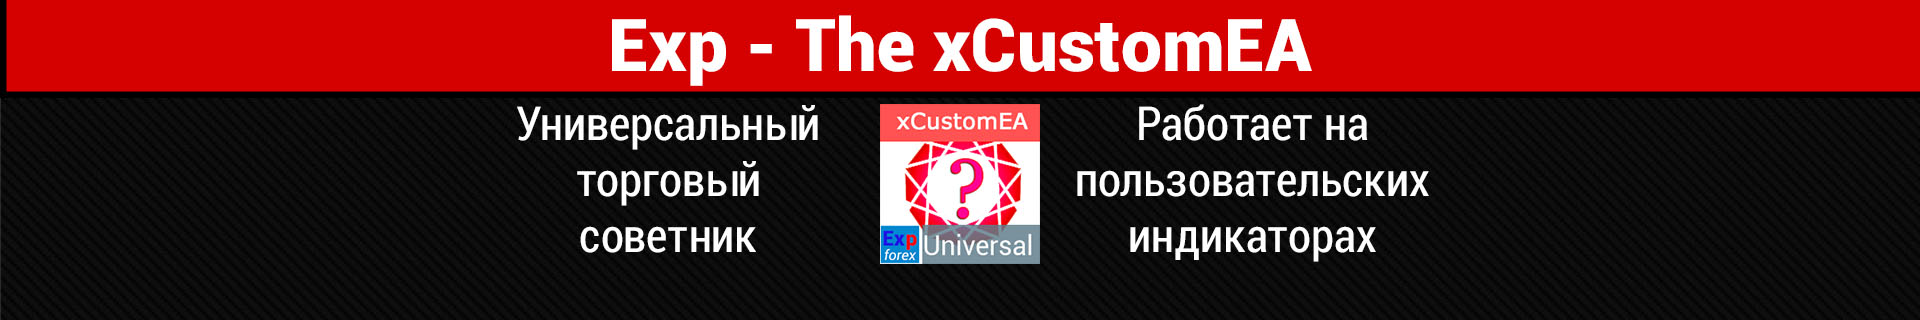 Подробнее о Exp - The xCustomEA